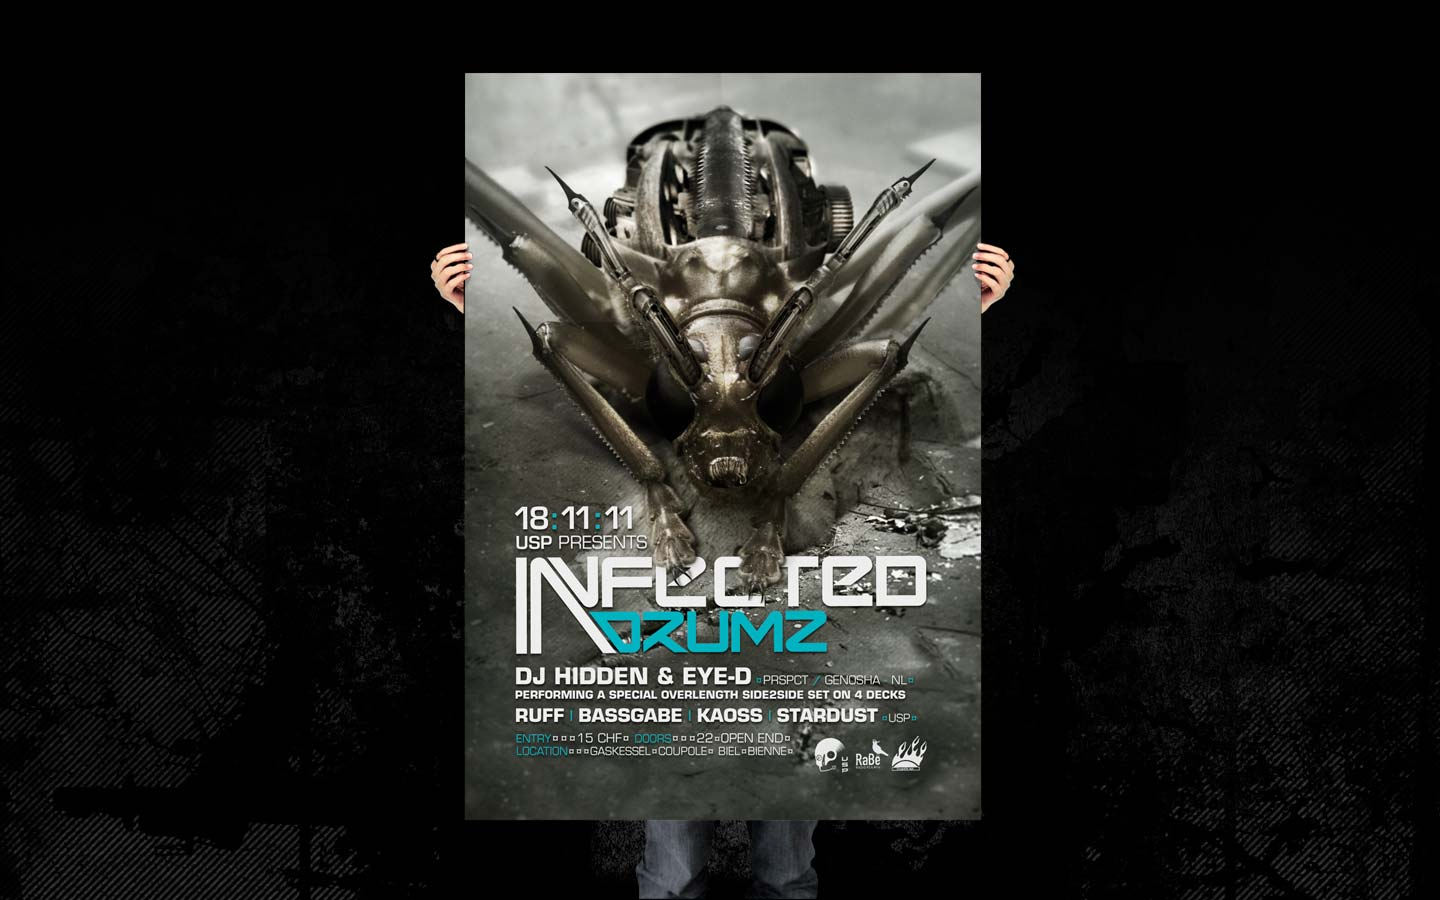 USP - Infected Drumz VI - Laurent Lemoigne - Donanubis - Don Anubis - Graphic Design - Flyer - Underground Sound Promotion - Coupole - Bienne - Art - Music - Electronic - Party - Event - Flyer - Poster - Industrial - Dark - Insect - Infectious - Infected - Mechanic - Biomechanic - Biomechanik - Biomechanical - Biomechanoid - Giger - Alternative - Underground - Geneva - Switzerland - Drum and Bass - d'n'b - Hard Drum - Dj Hidden & Eye-d / Prspct / Genosha - Ruff - Bassgabe - Kaoss - Stardust - Metal - Hard - Rock - Death - Band - Illustration